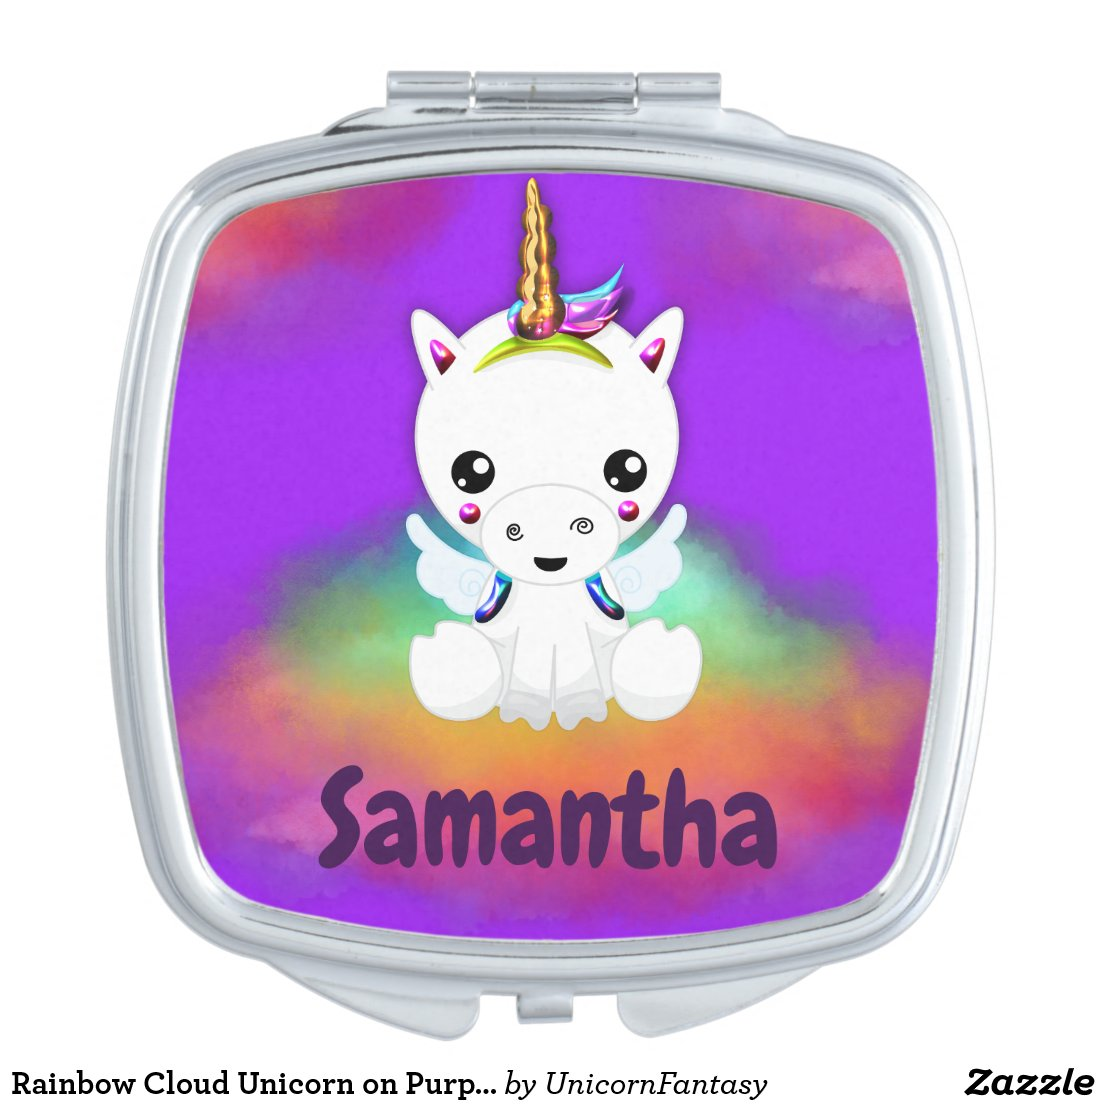 Rainbow Cloud Unicorn on Purple Compact Mirror